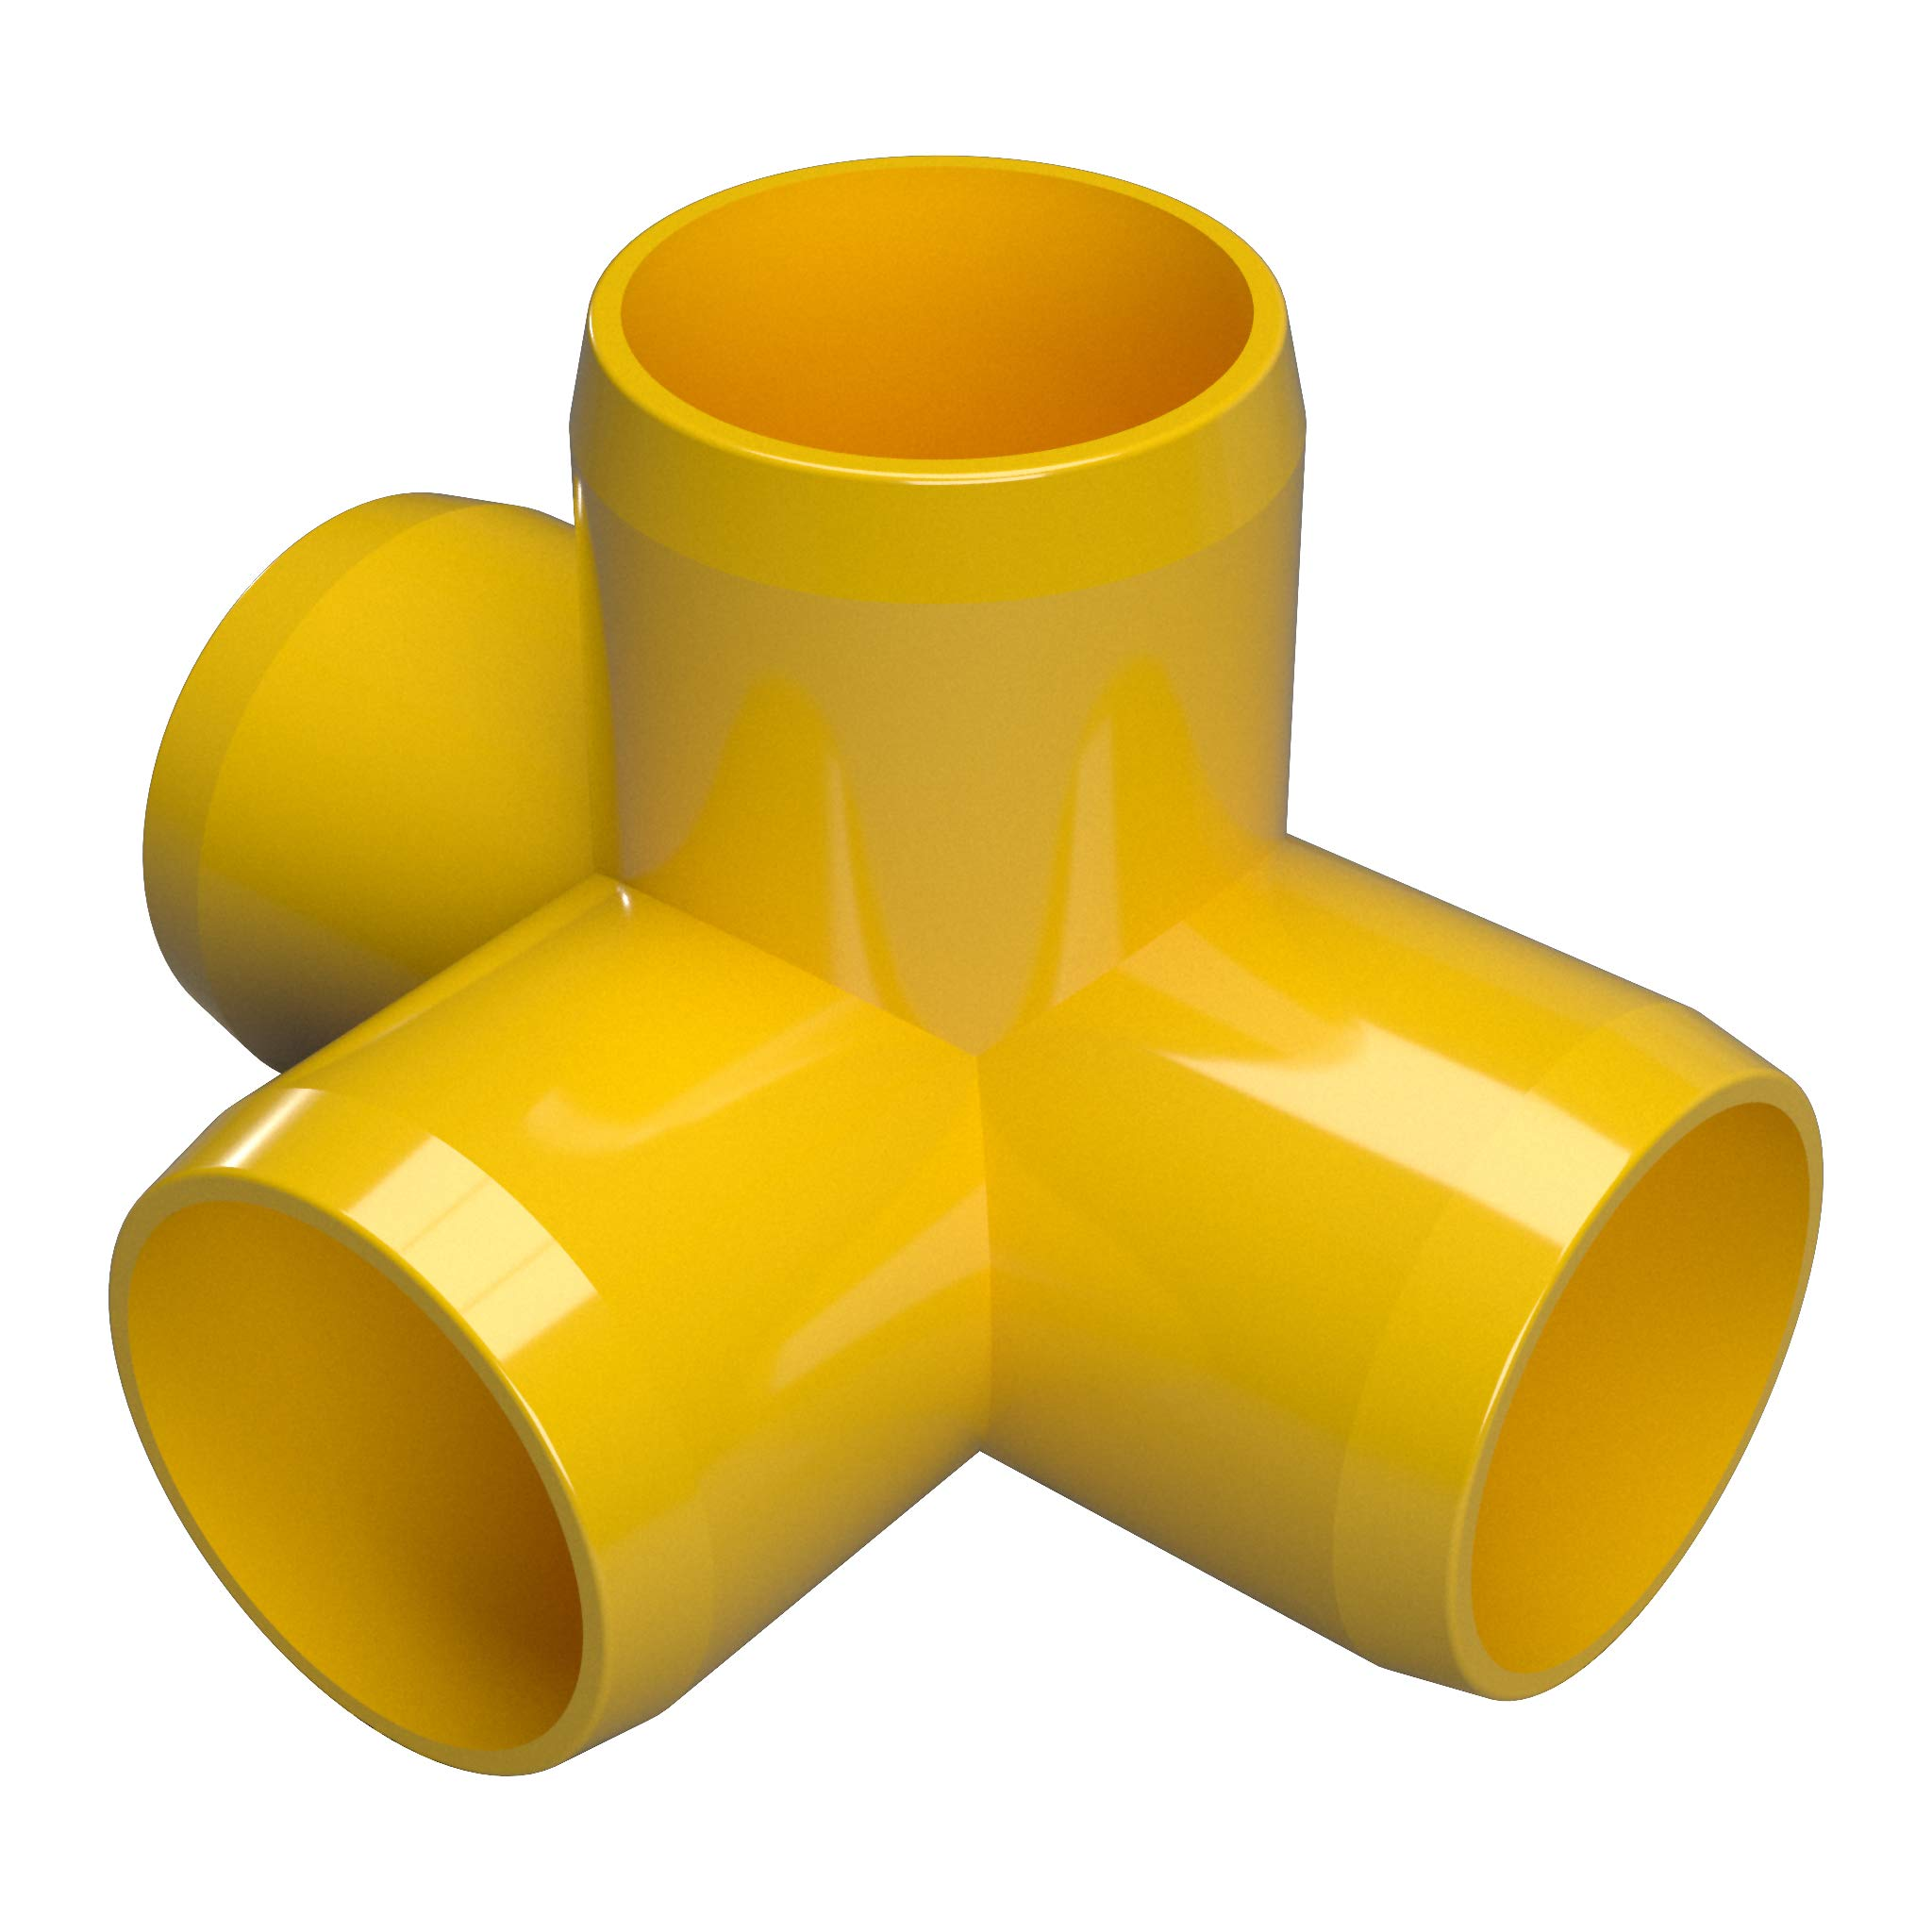 FORMUFIT F0014WT-YE-4 4-Way Tee PVC Fitting, Furniture Grade, 1'' Size, Yellow (Pack of 4)